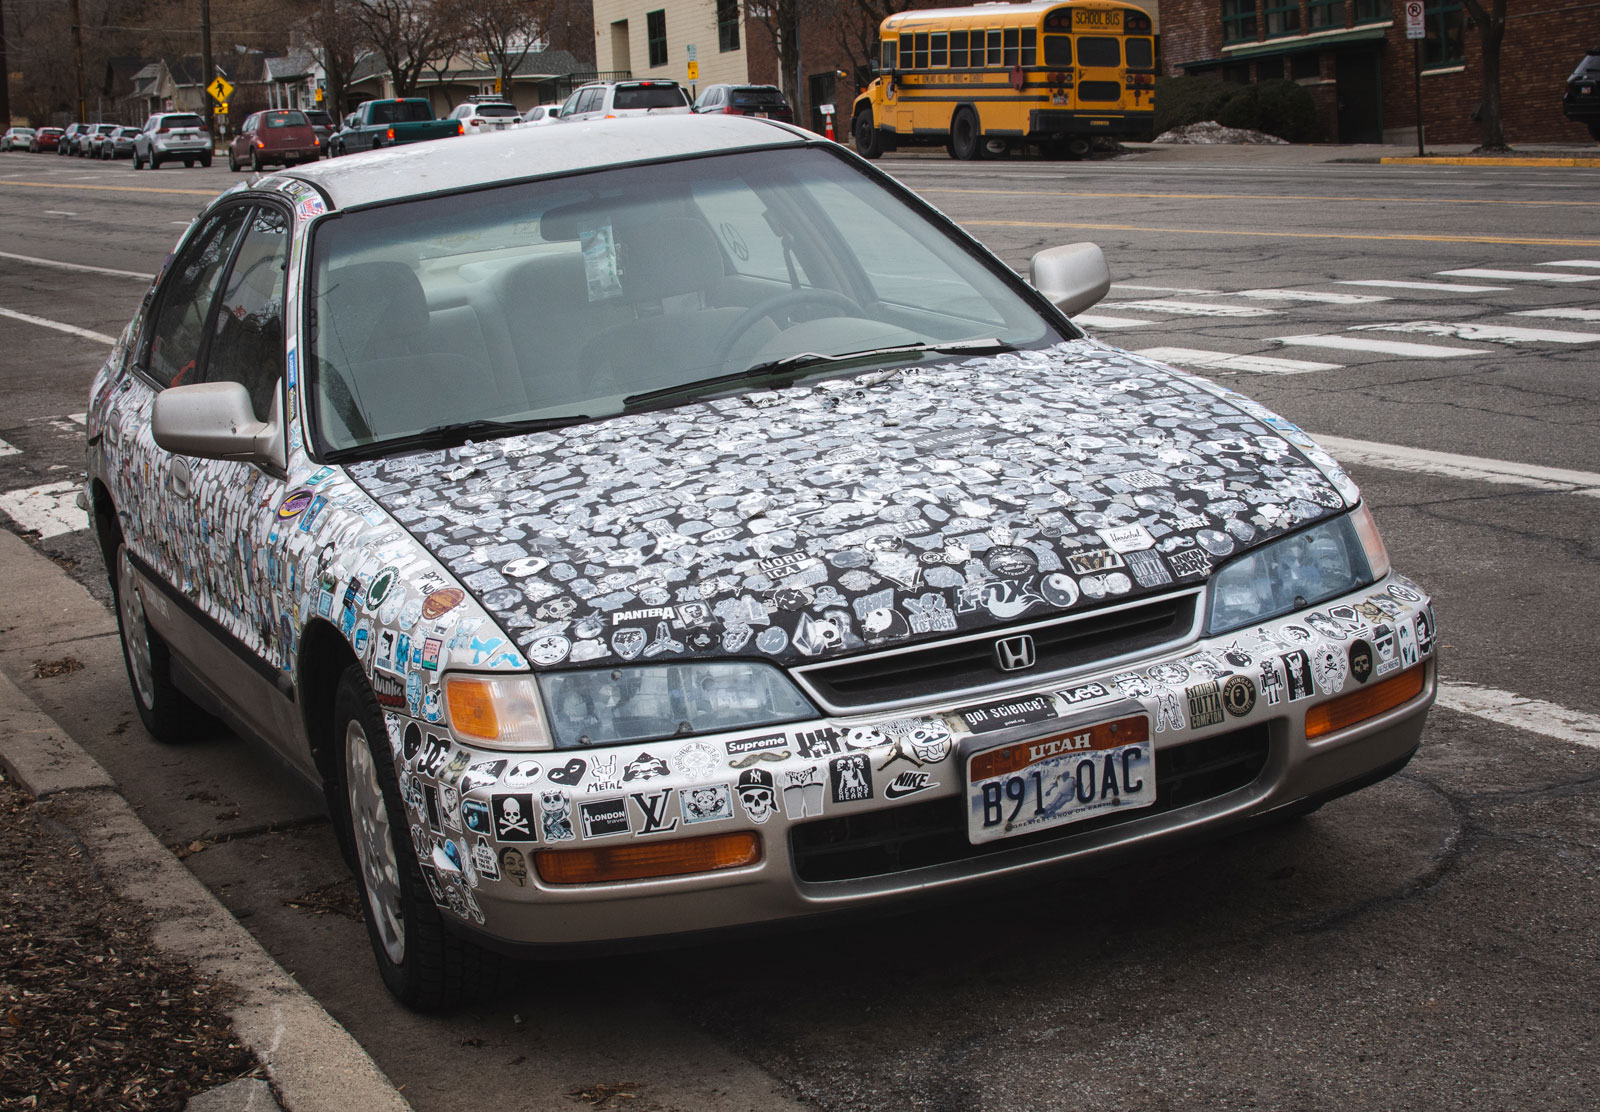 Sticker covered car